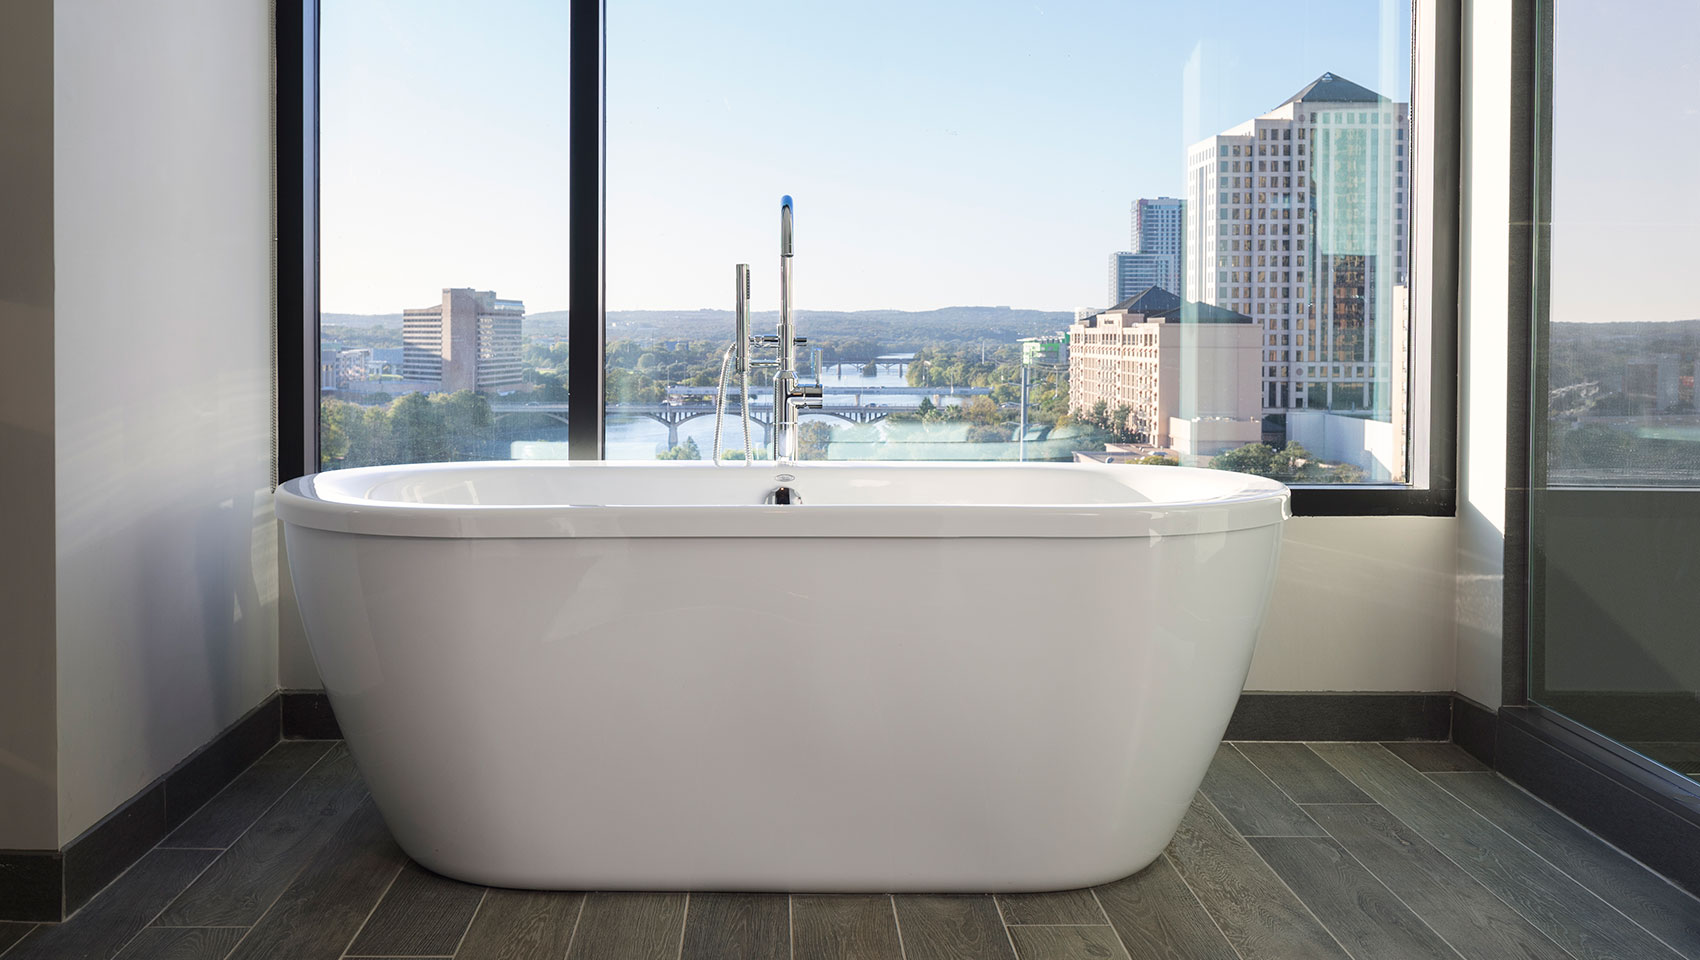 Hotels in / near downtown with nice bathtubs? : Austin